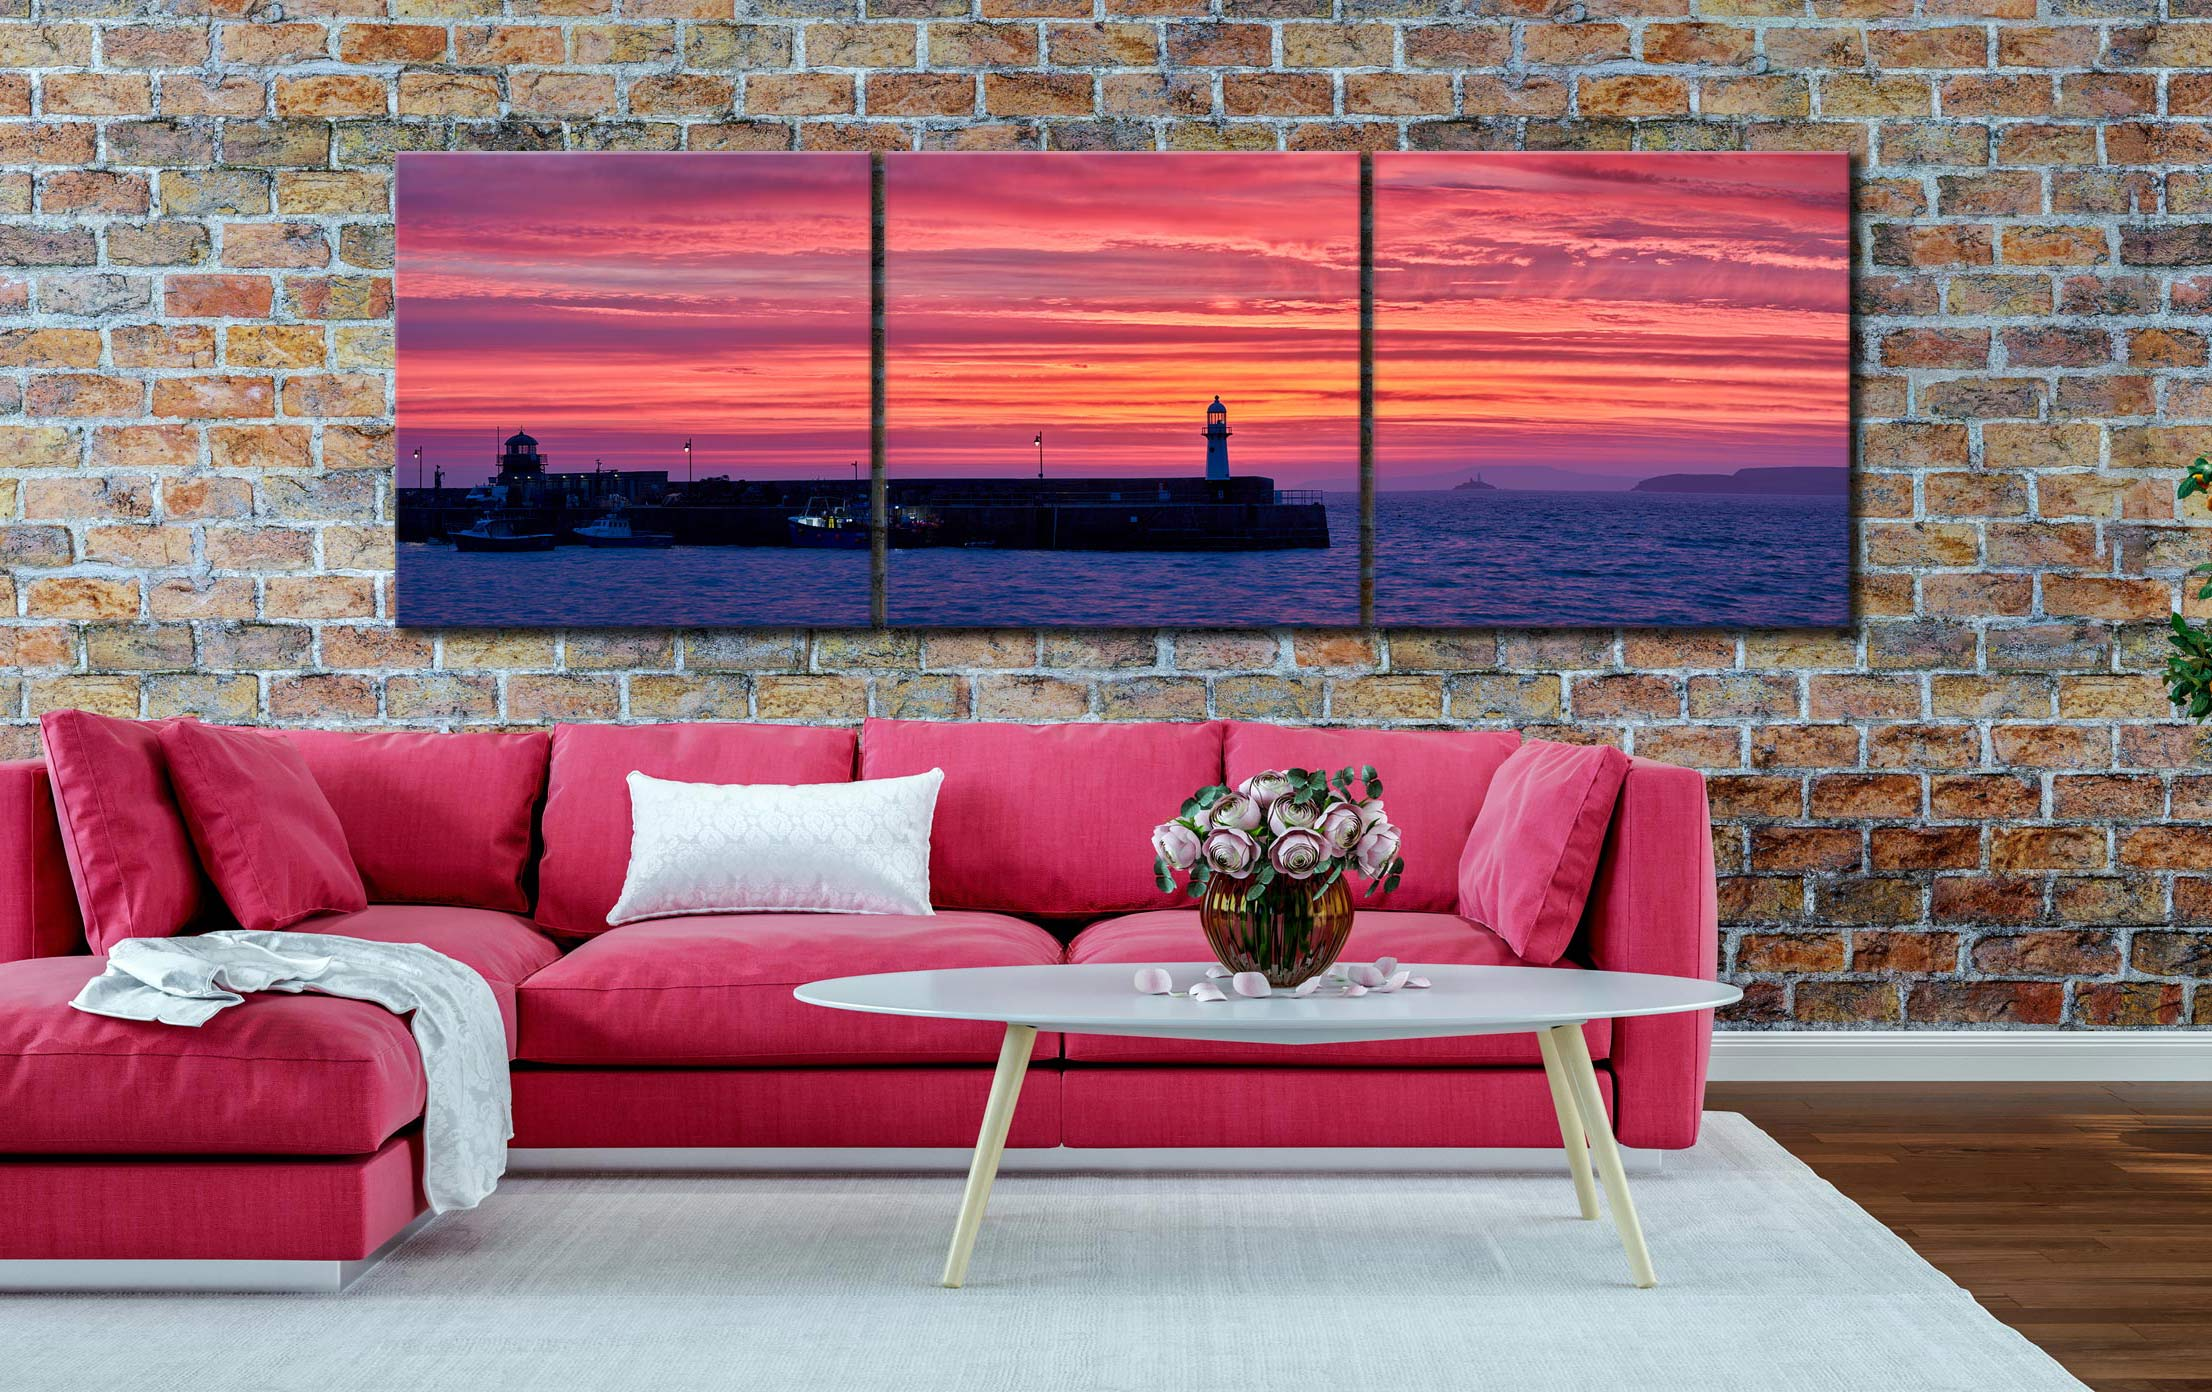 Approaching Dawn Over St Ives - 3 Panel Canvas on Wall